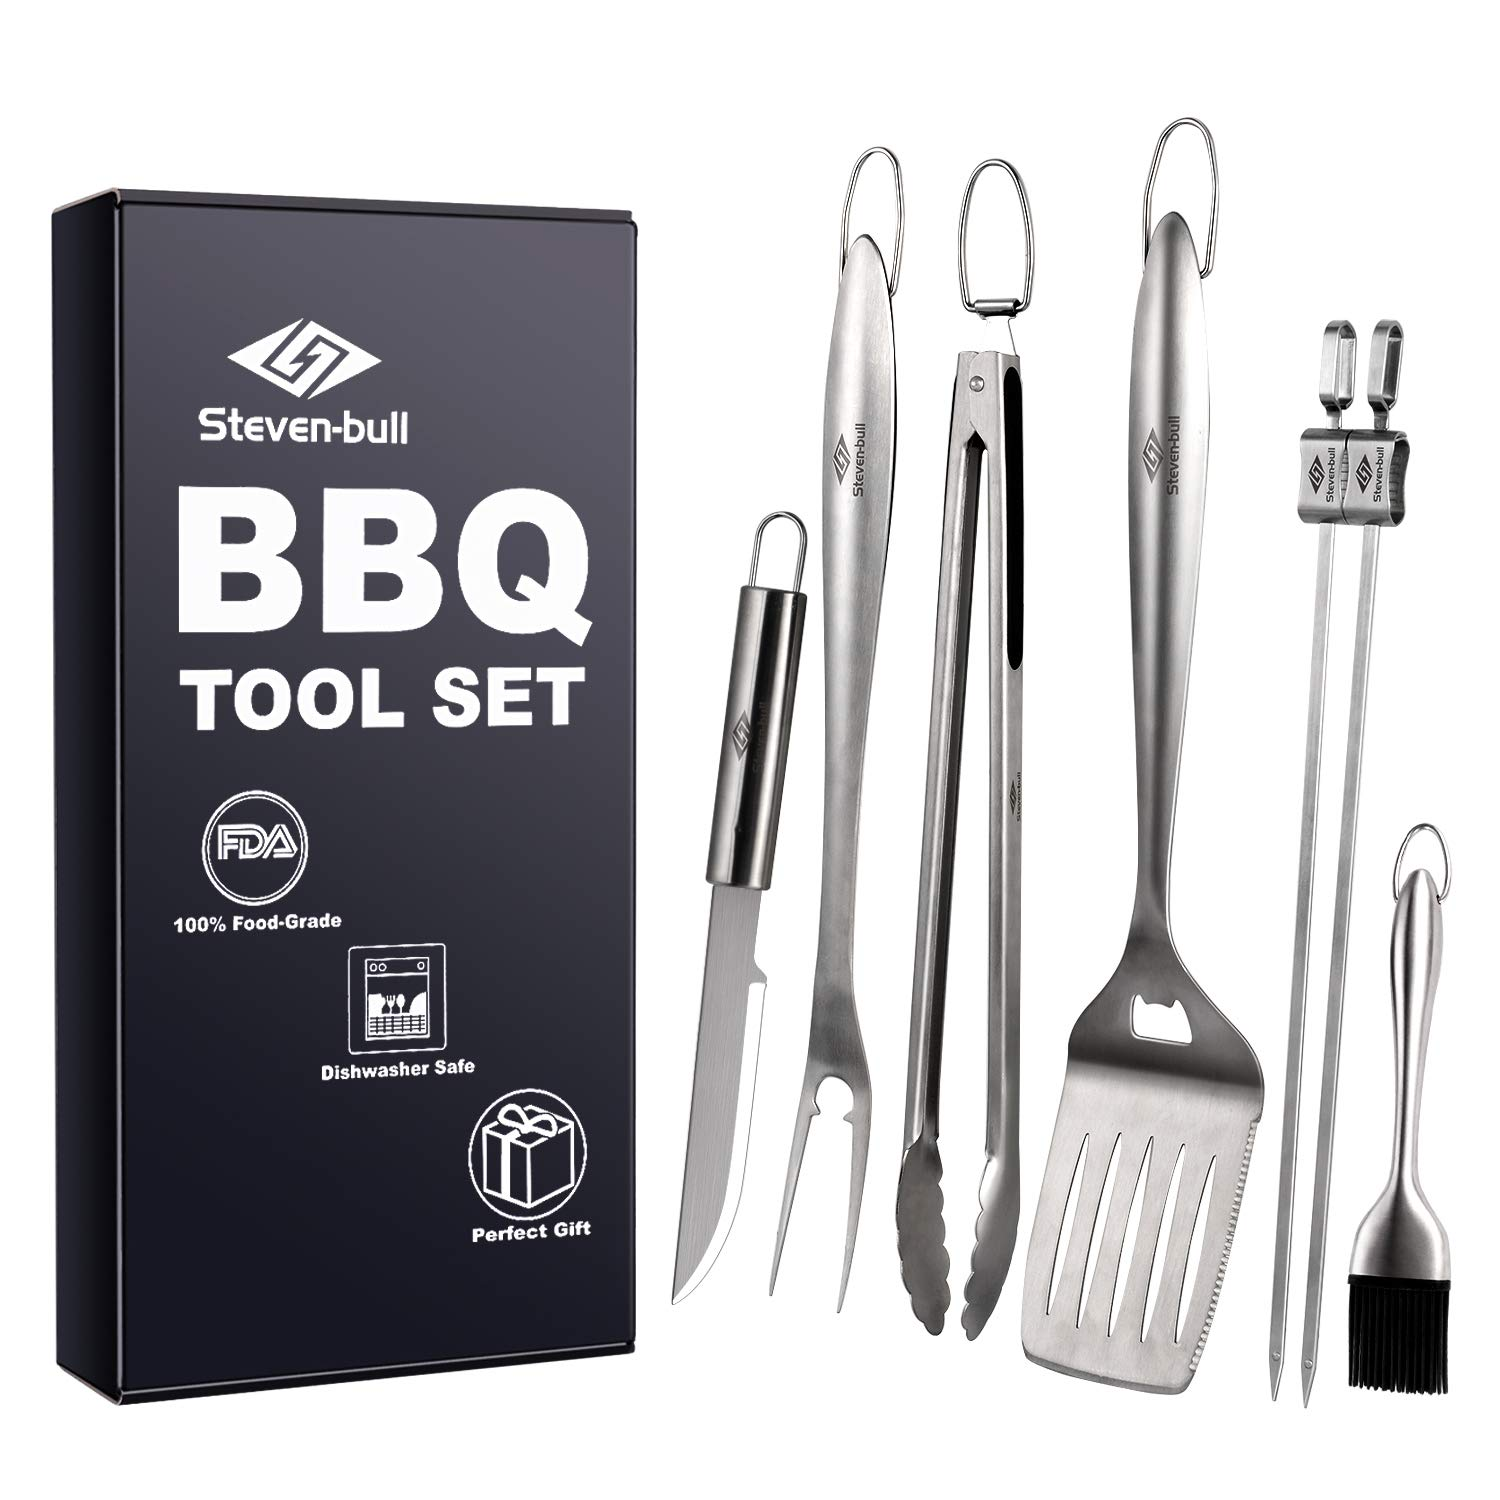 Heavy Duty BBQ Grilling Tool Sets, Extra Thick Stainless Steel Spatula, Tongs, Fork, Basting Brush, Knife and Skewers, Gift Box Package, Best for Barbecue Grill, 7 Pack Utensils Accessories